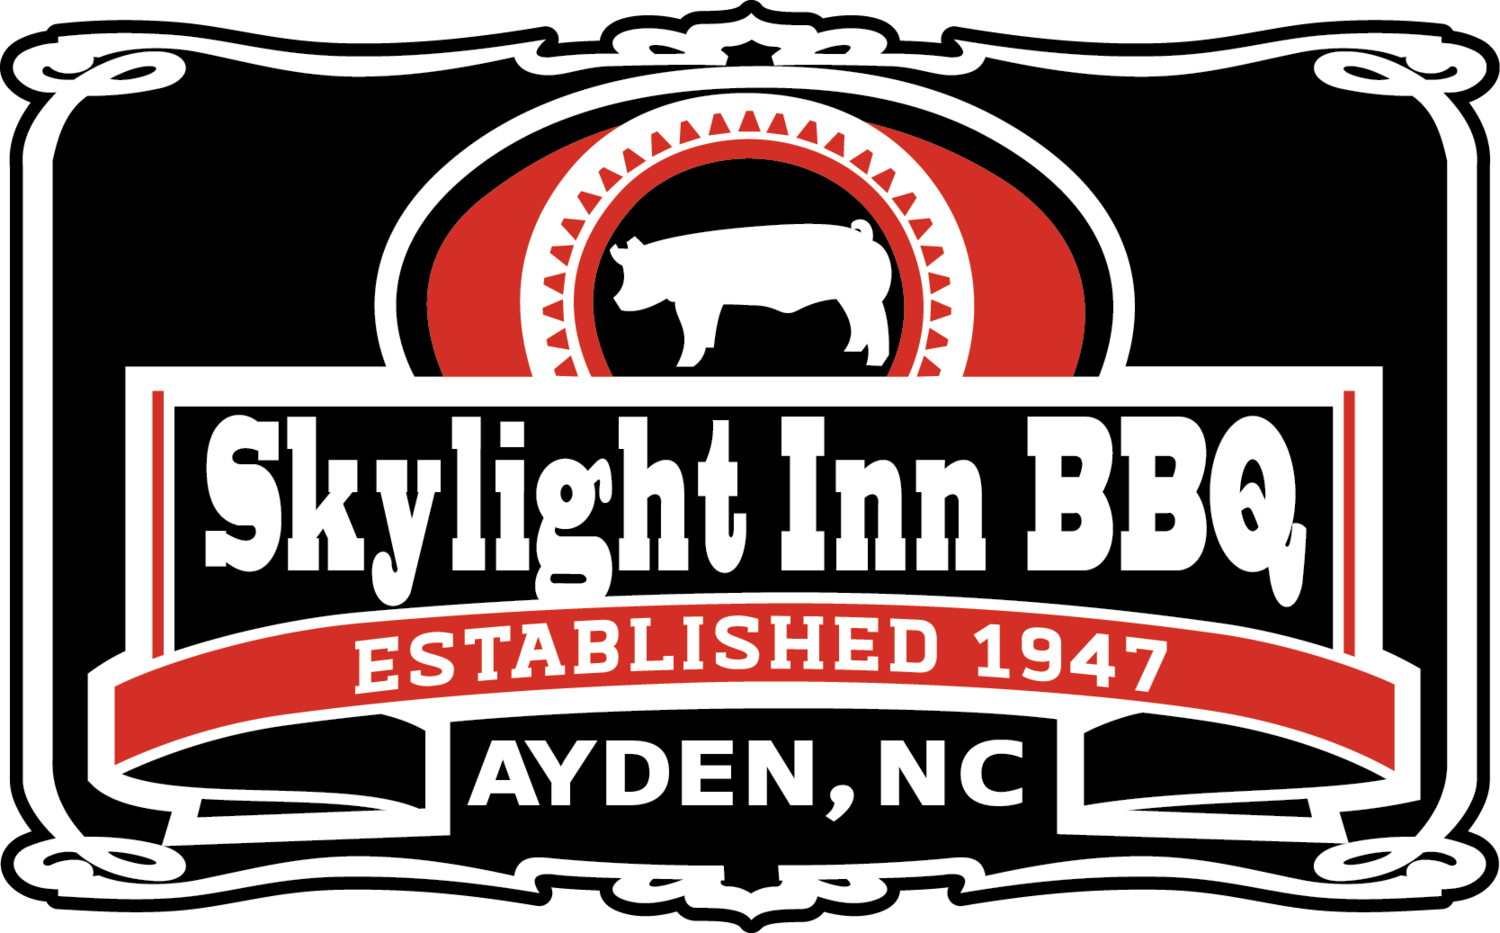 Skylight Inn BBQ